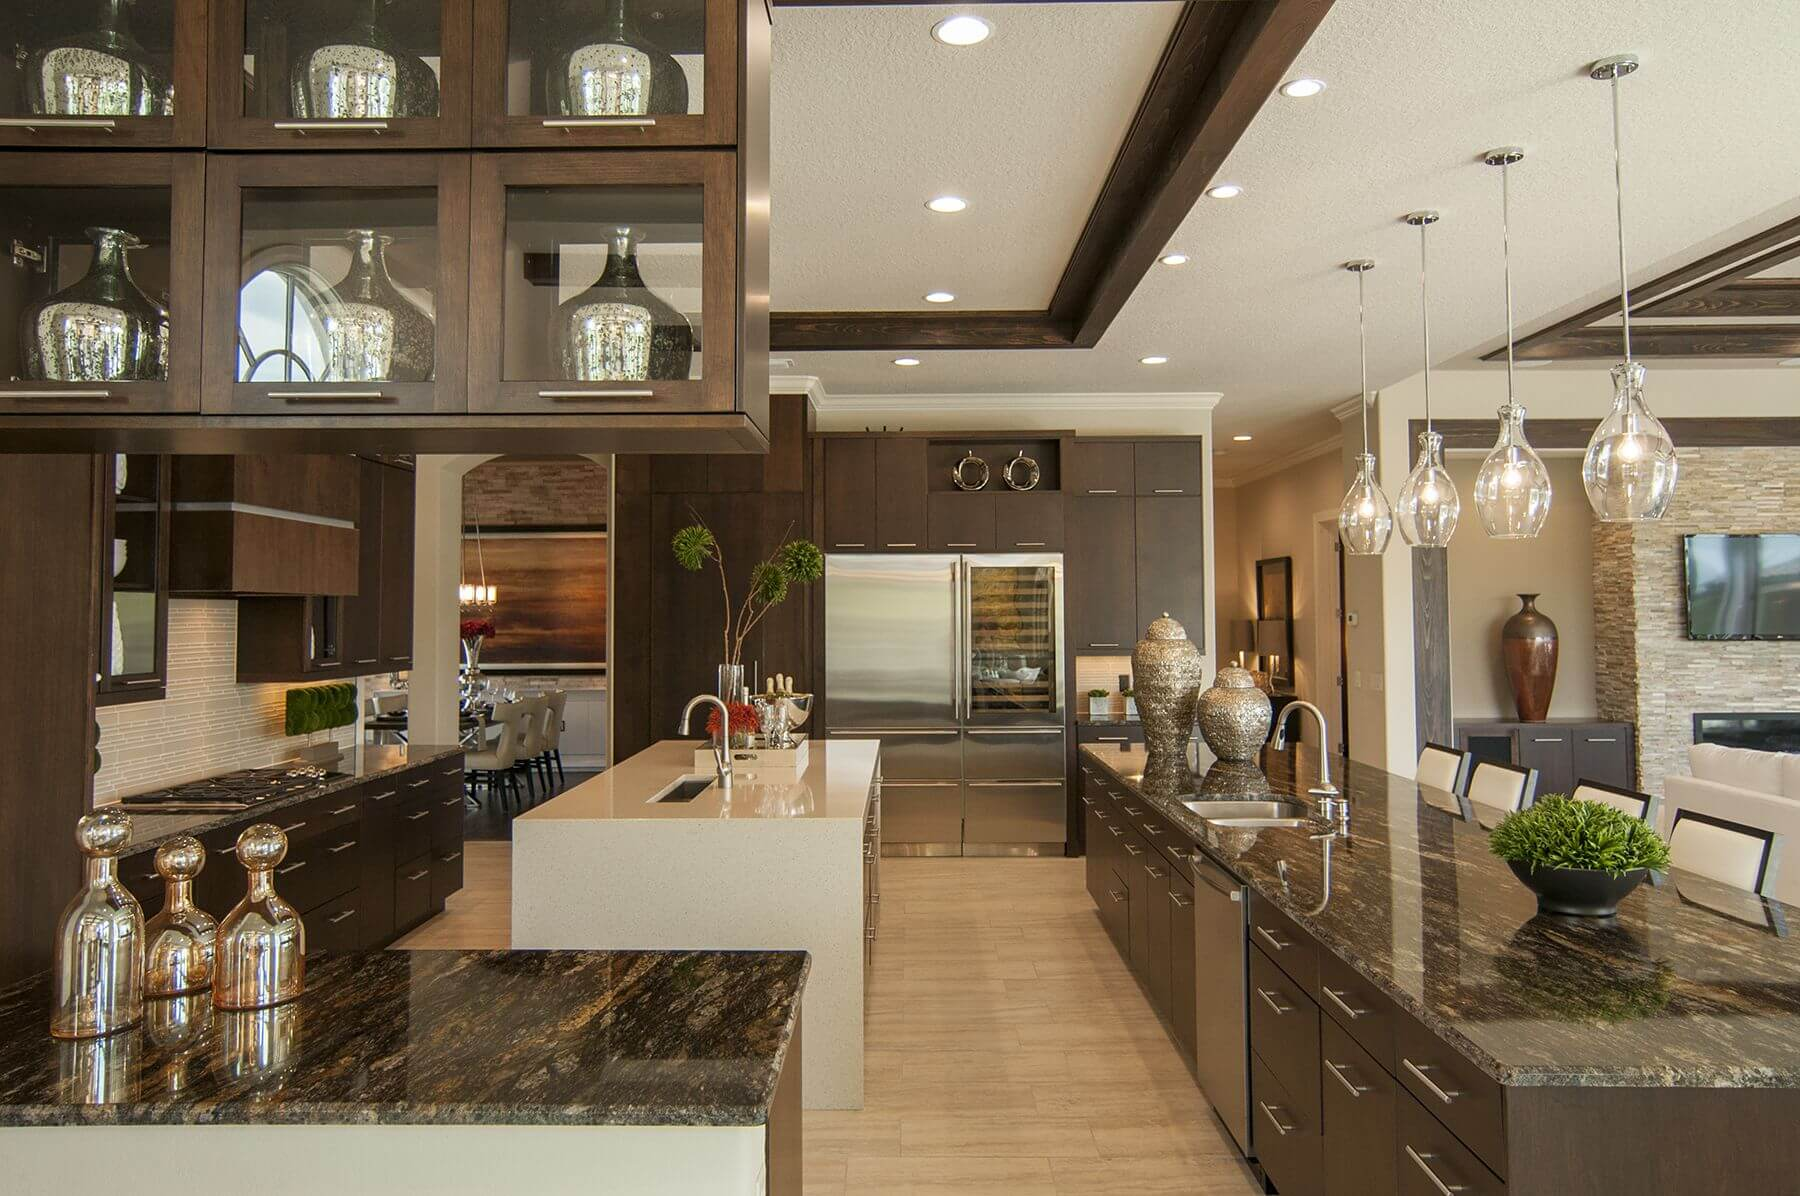 Ultra-modern look kitchen flush with dark tones: marble countertops, minimalist wood cabinetry paired with light hardwood flooring and white tone island in open design.